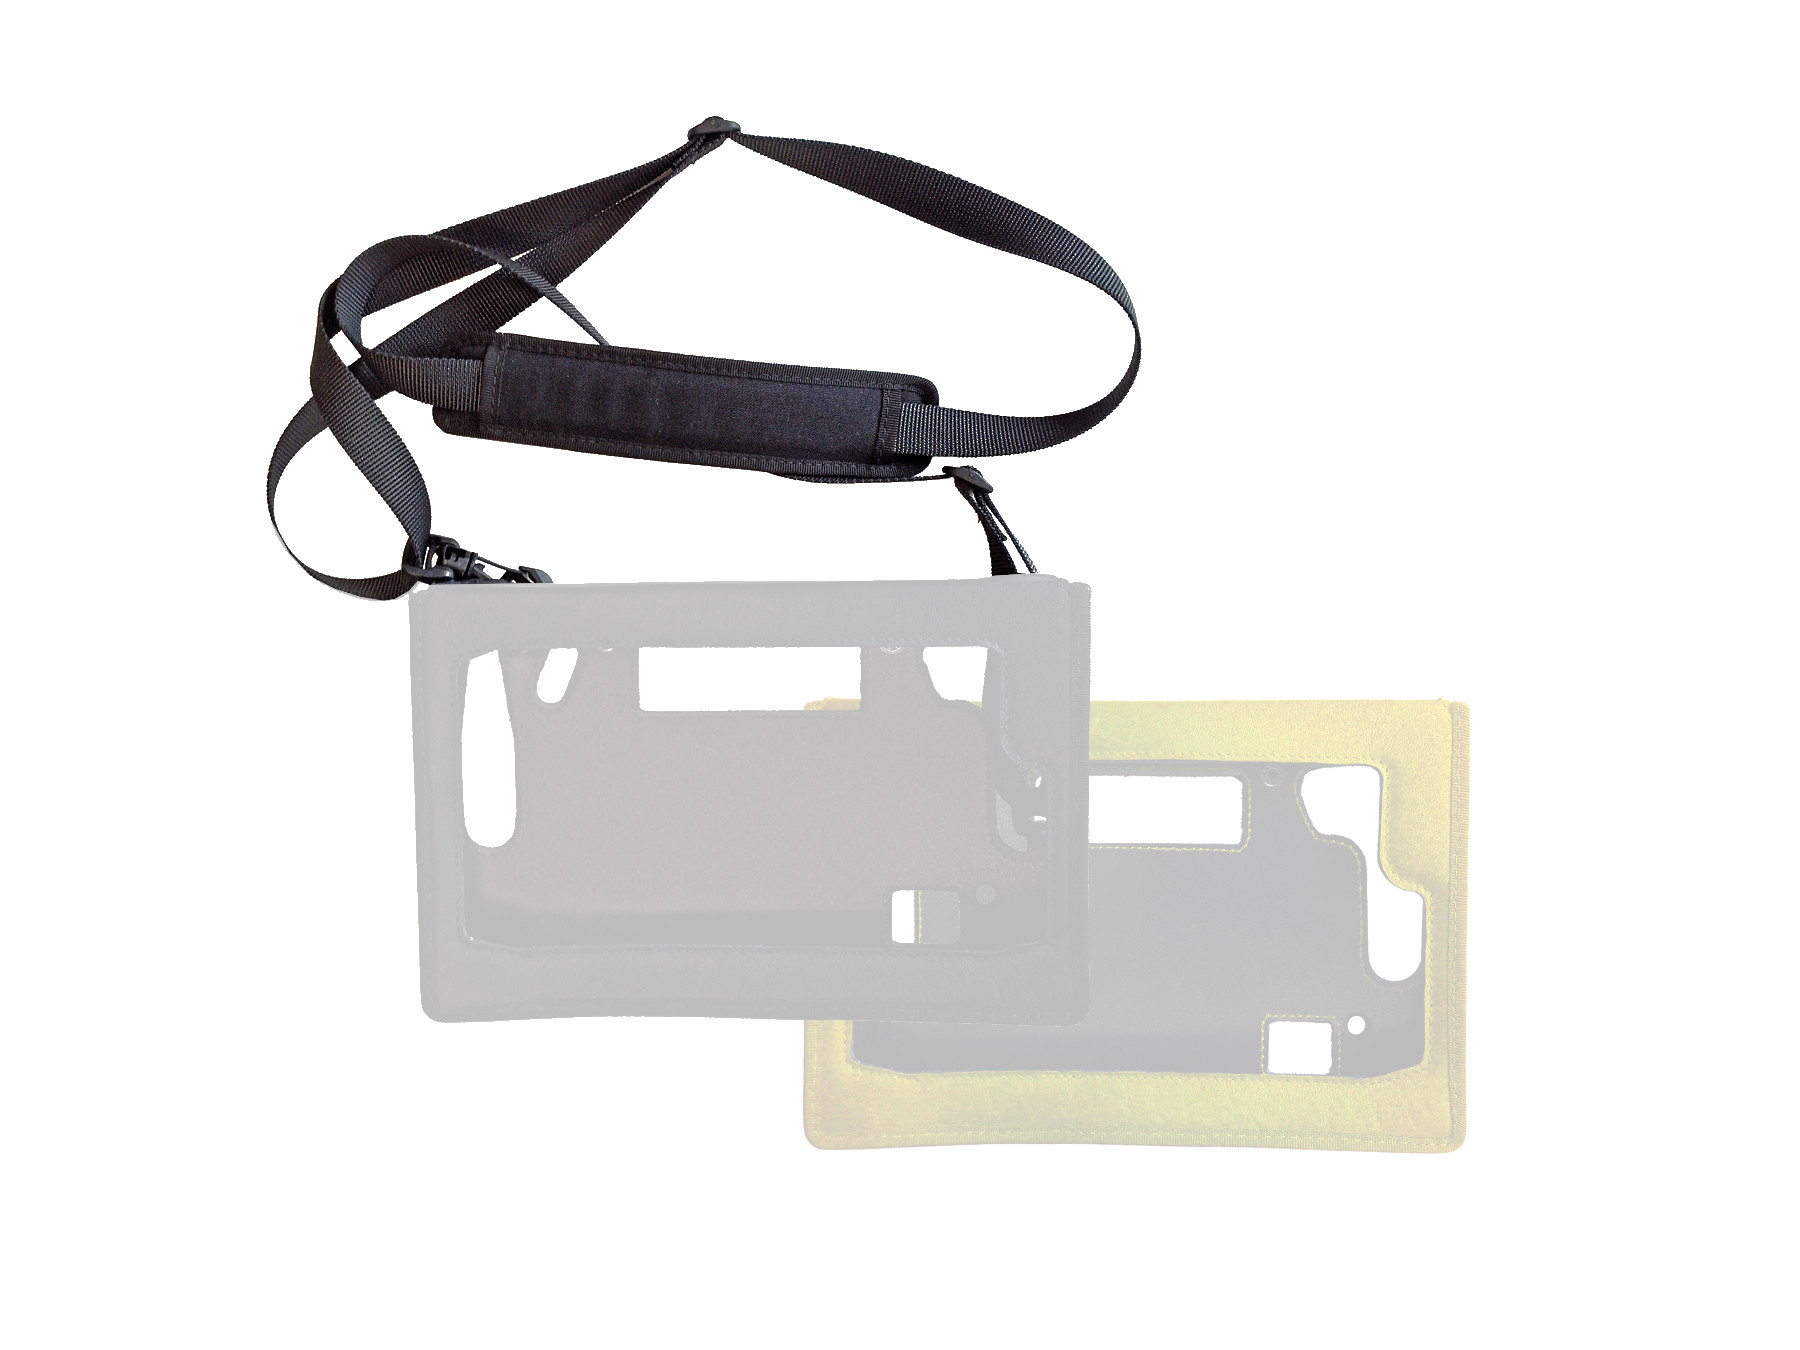 IS930.x / IS910.x Carrying strap for leather bag